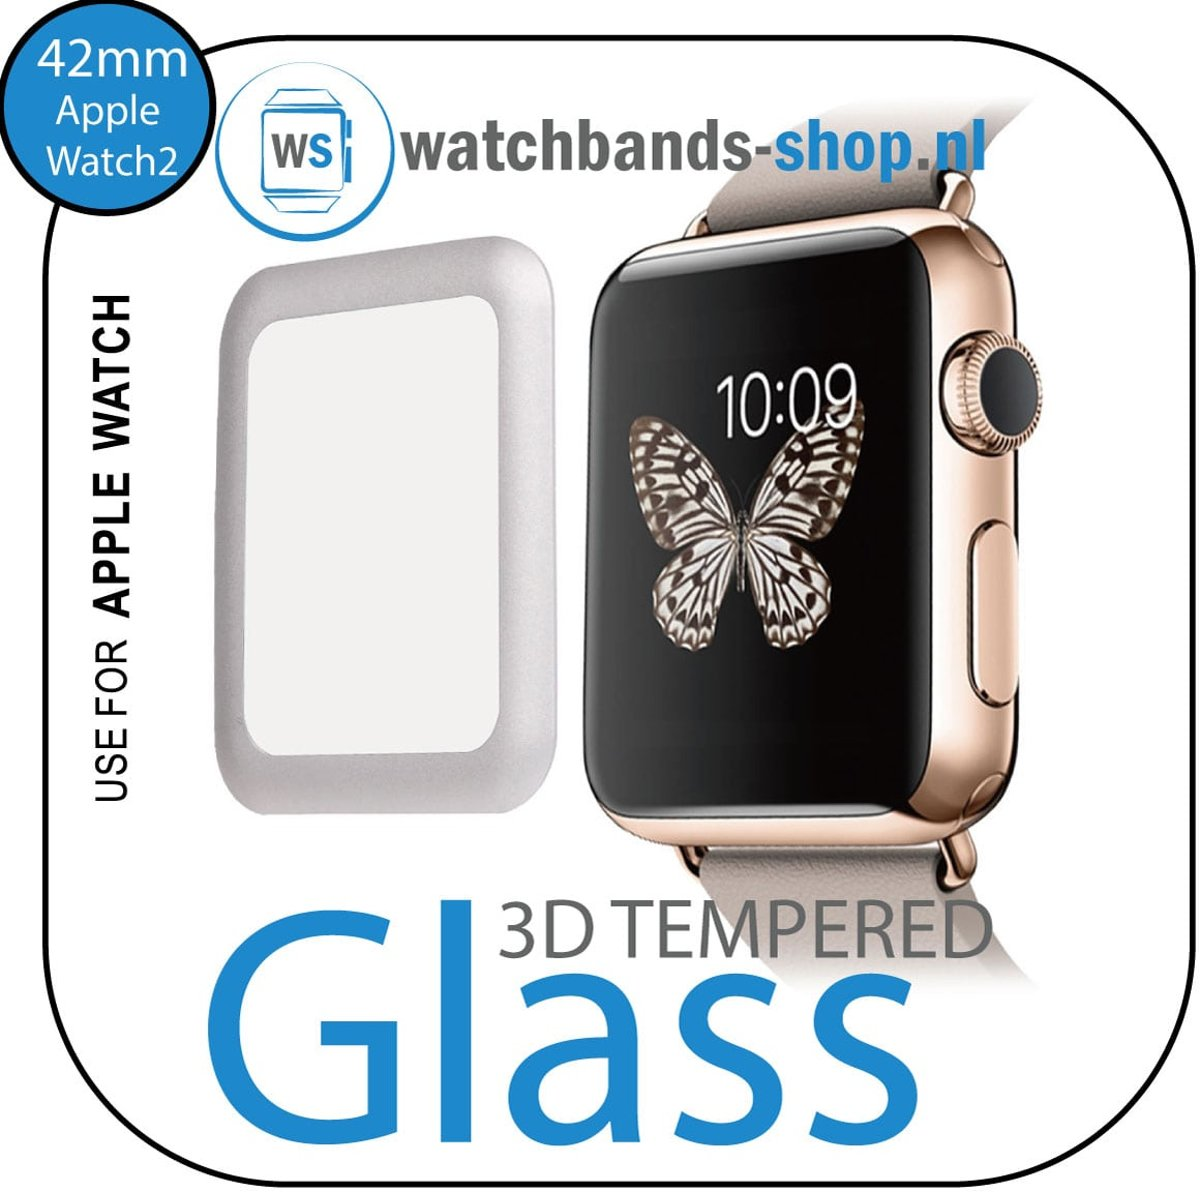 Watchbands-shop.nl 42mm full Cover 3D Tempered Glass Screen Protector For Apple watch / iWatch 2 silver edge kopen